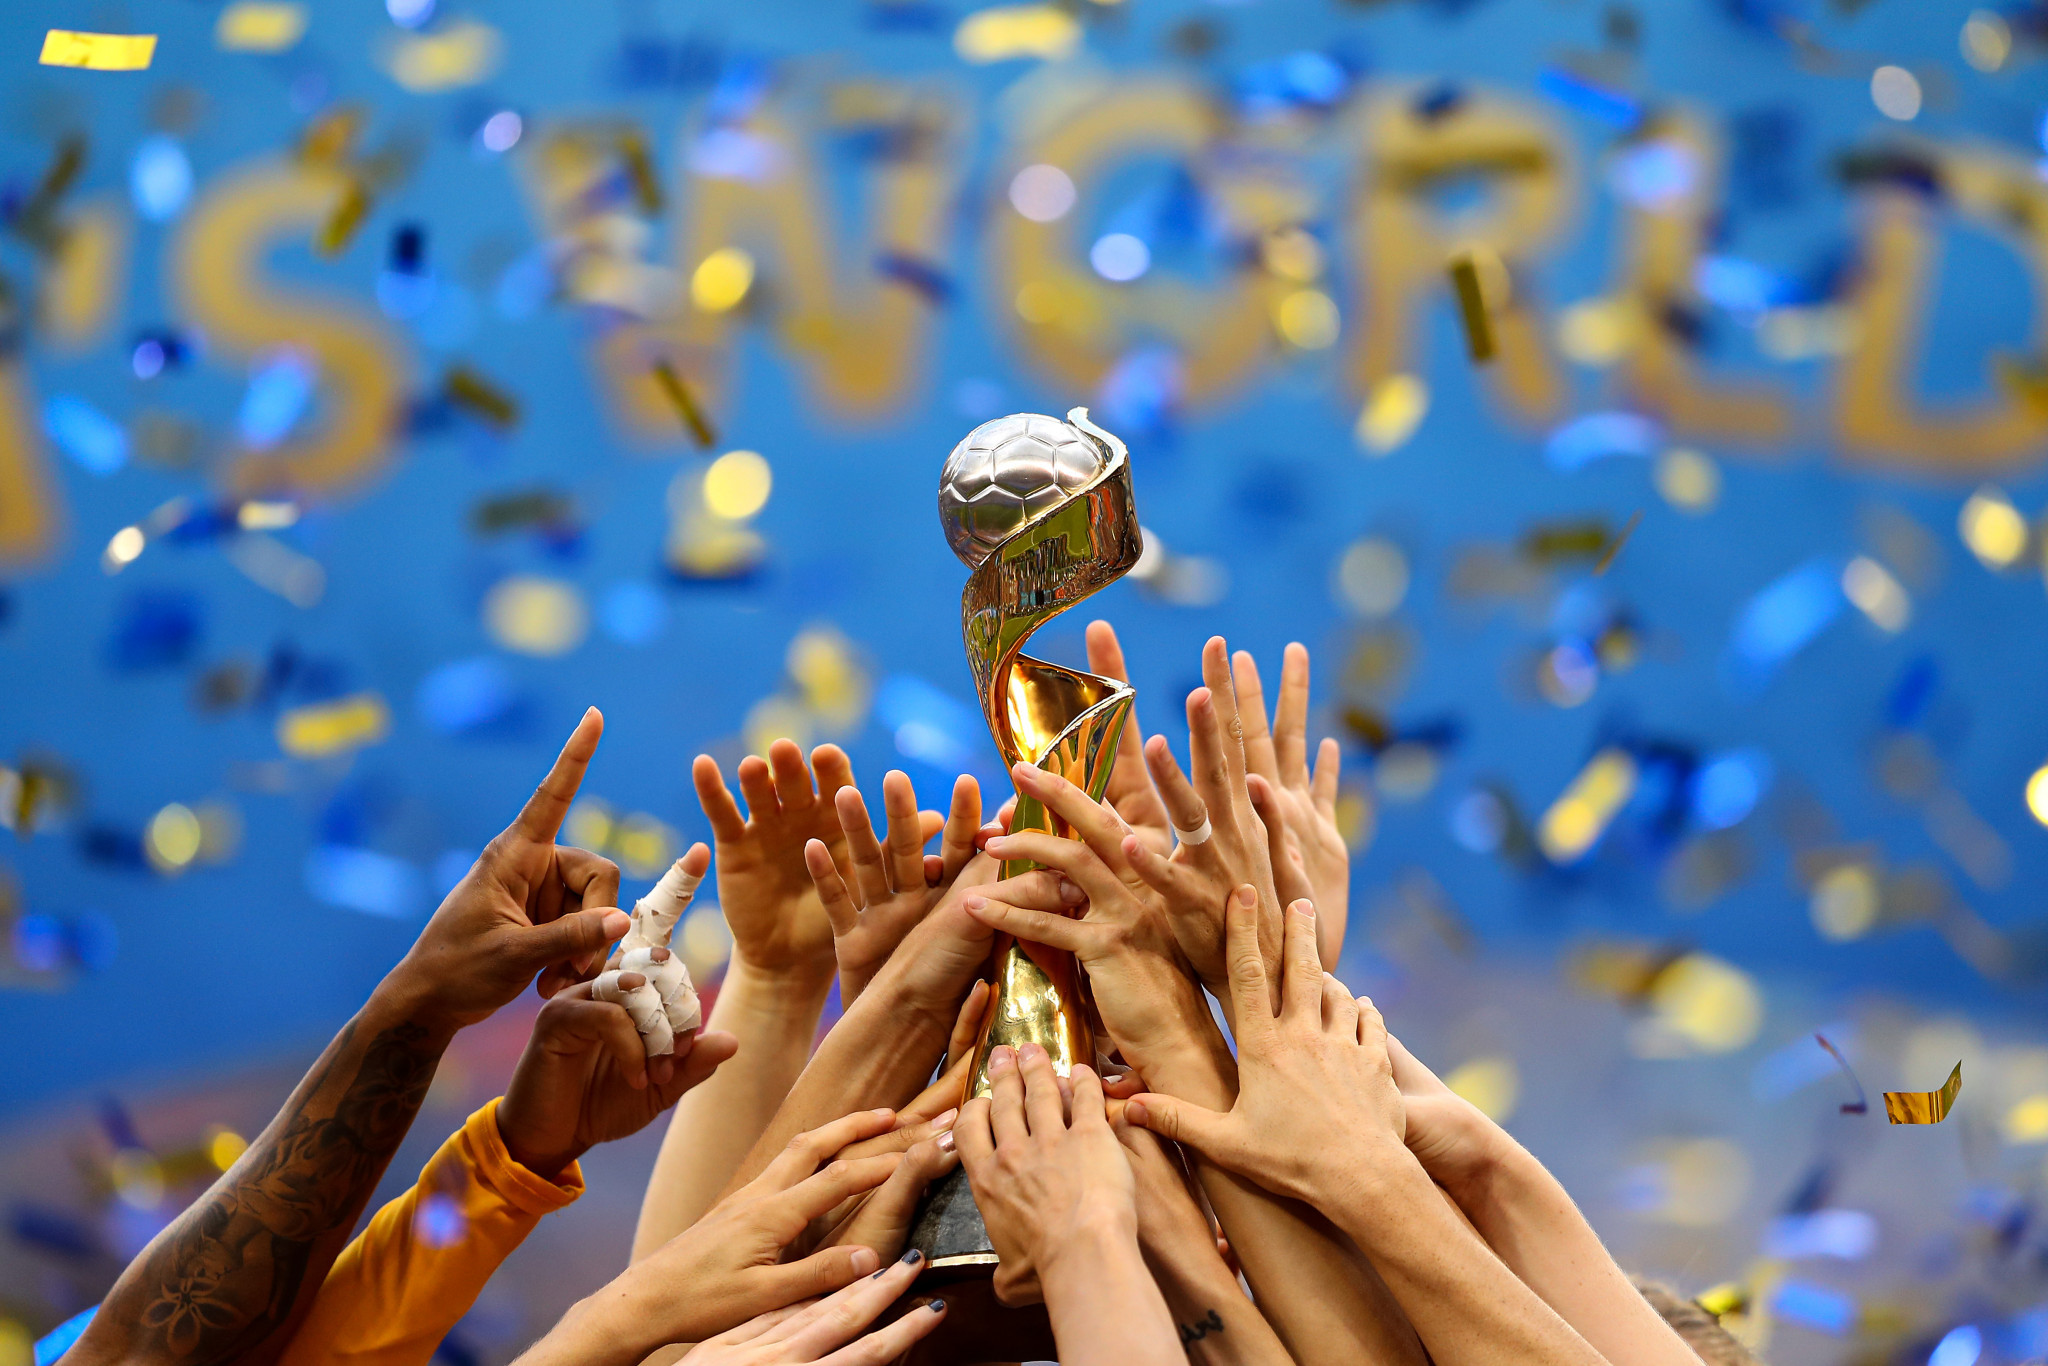 Australia and Brazil confirm FIFA Women's World Cup bids unaffected by expansion to 32 teams